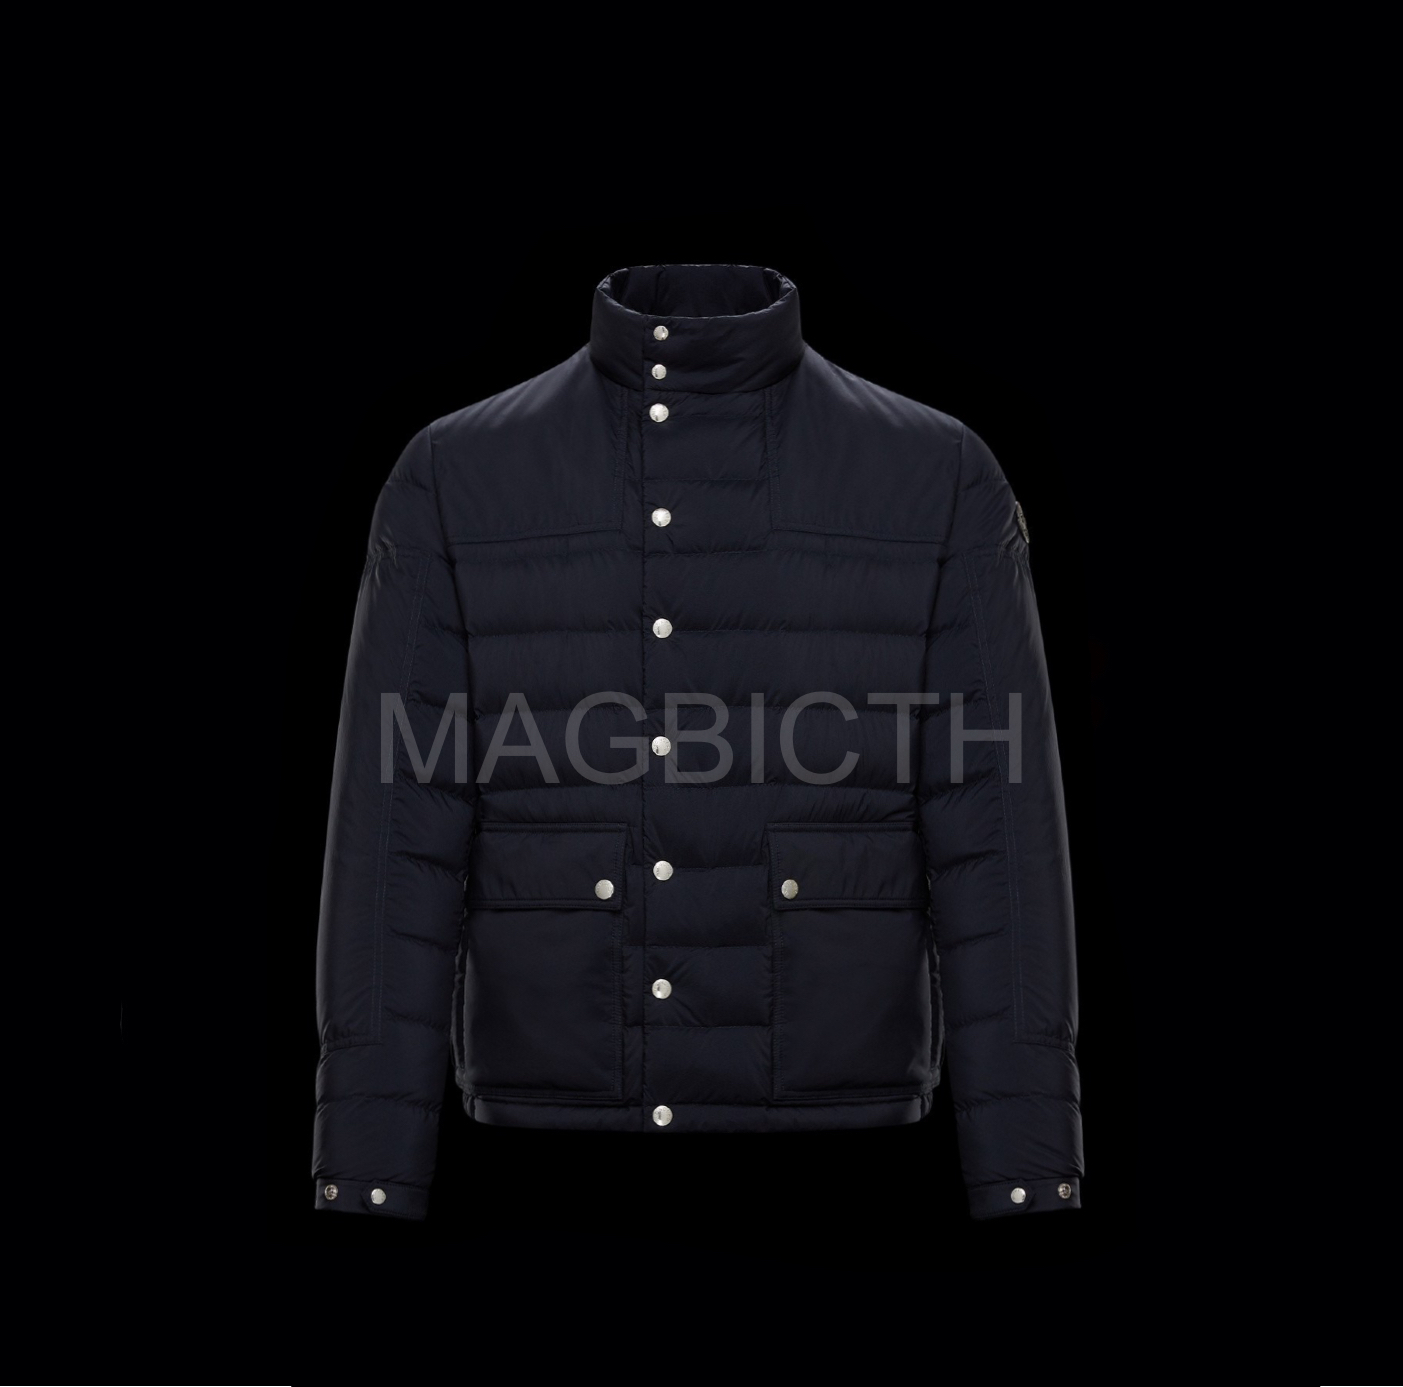 2021SS MONCLER BOUTMY ダウンジャケット ミラノ本店買付 (MONCLER/ダウンジャケット) 23874